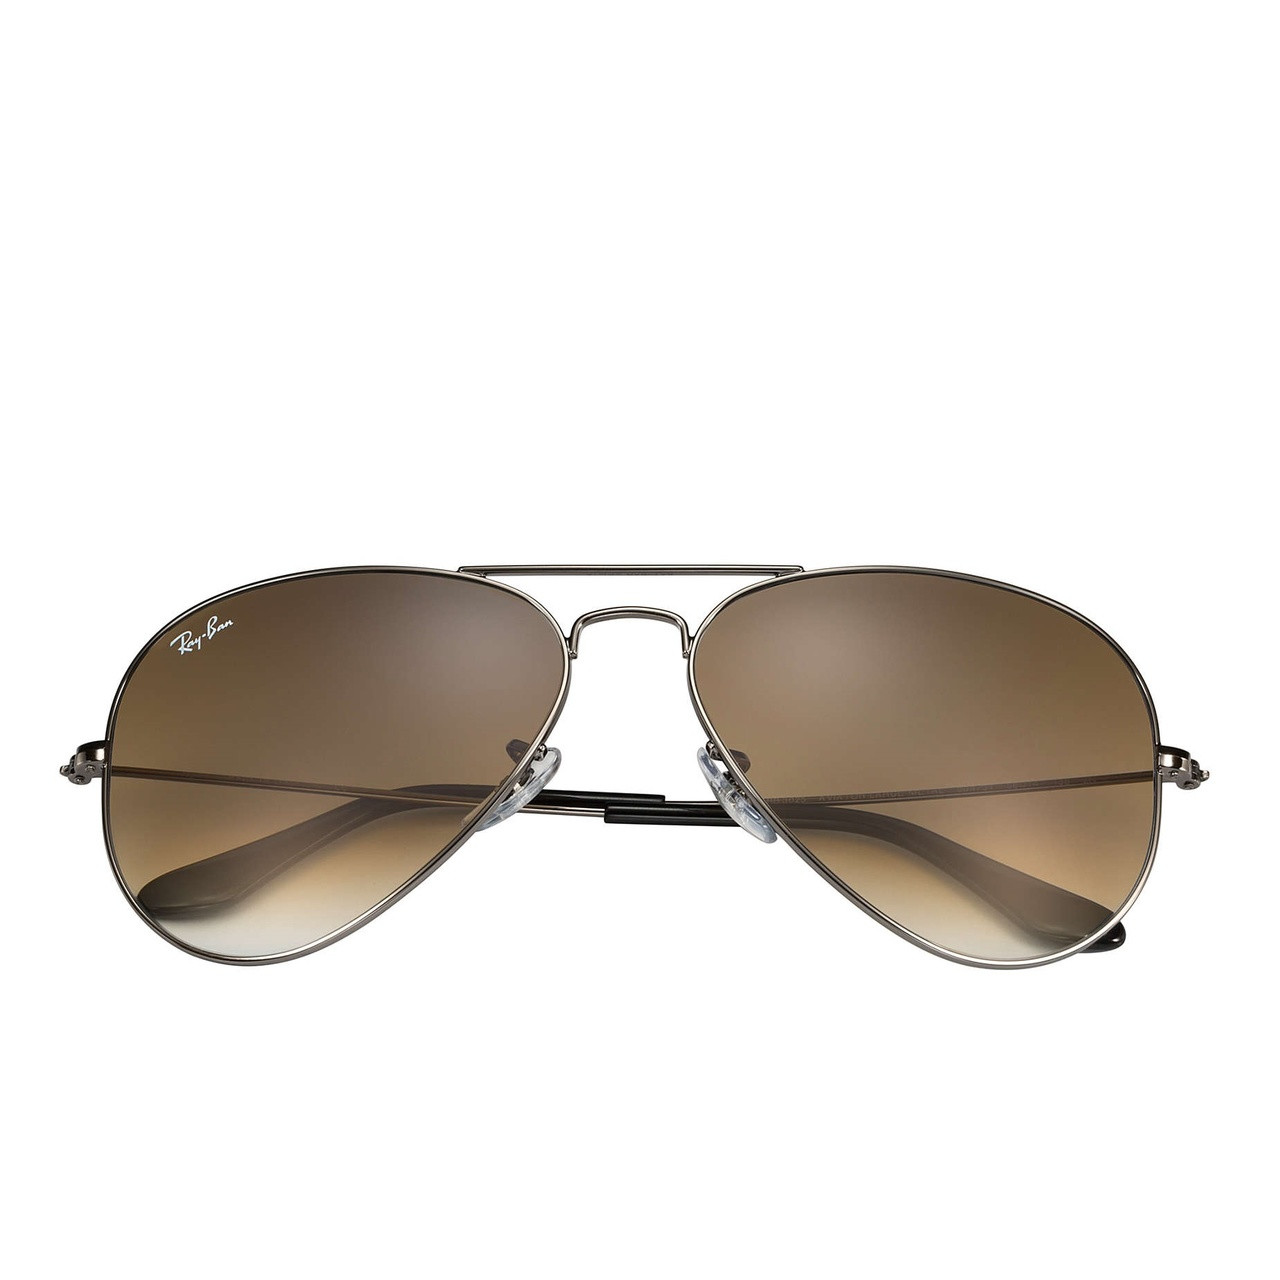 8cb29d6a7e Ray-Ban Classic Aviator Sunglasses (Gunmetal Brown Gradient)